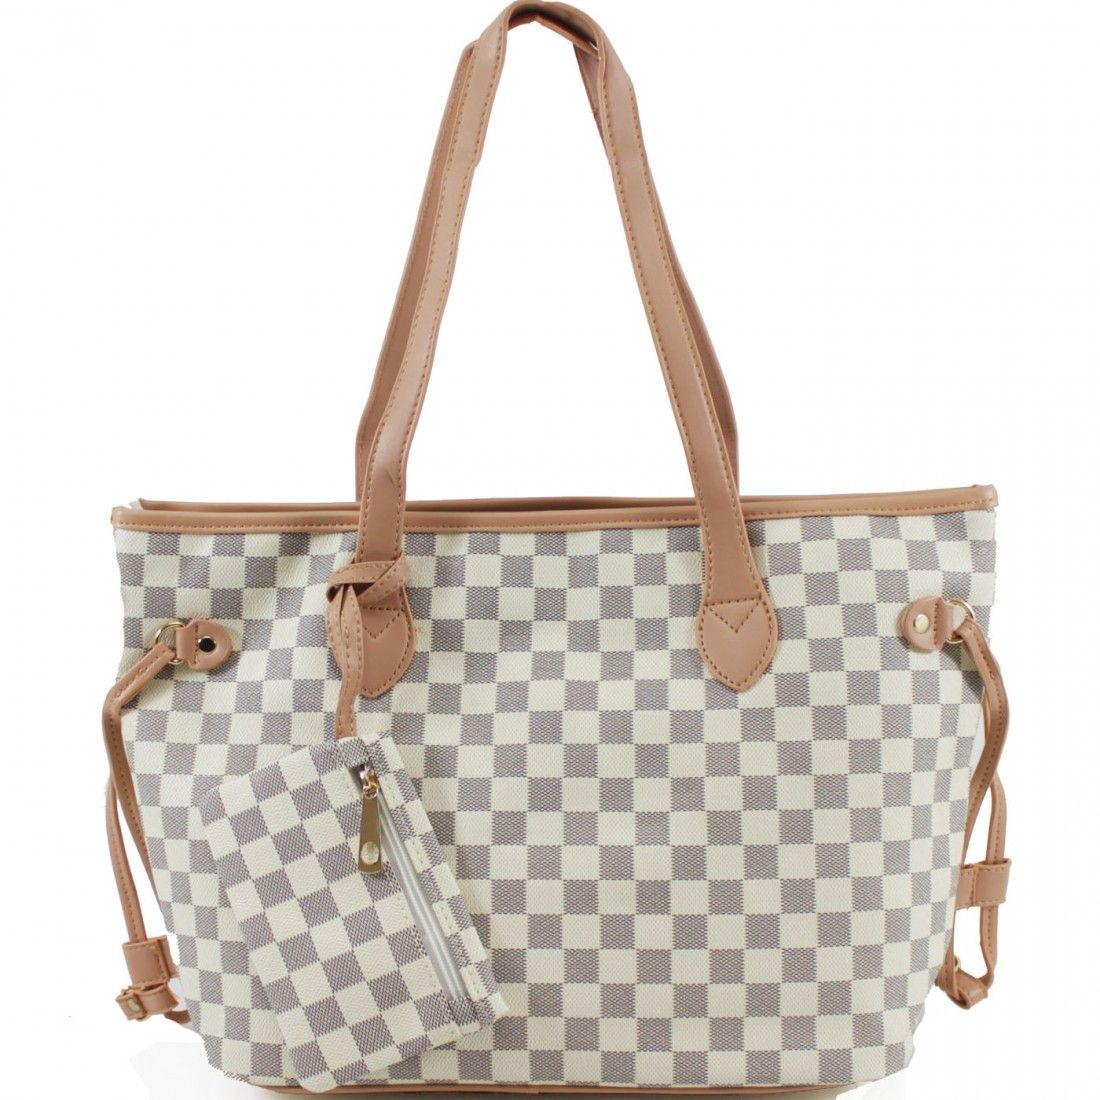 b63d4bc9759 Lets Shop' Louis Vuitton Inspired Tote Bag - White Check in 2019 ...